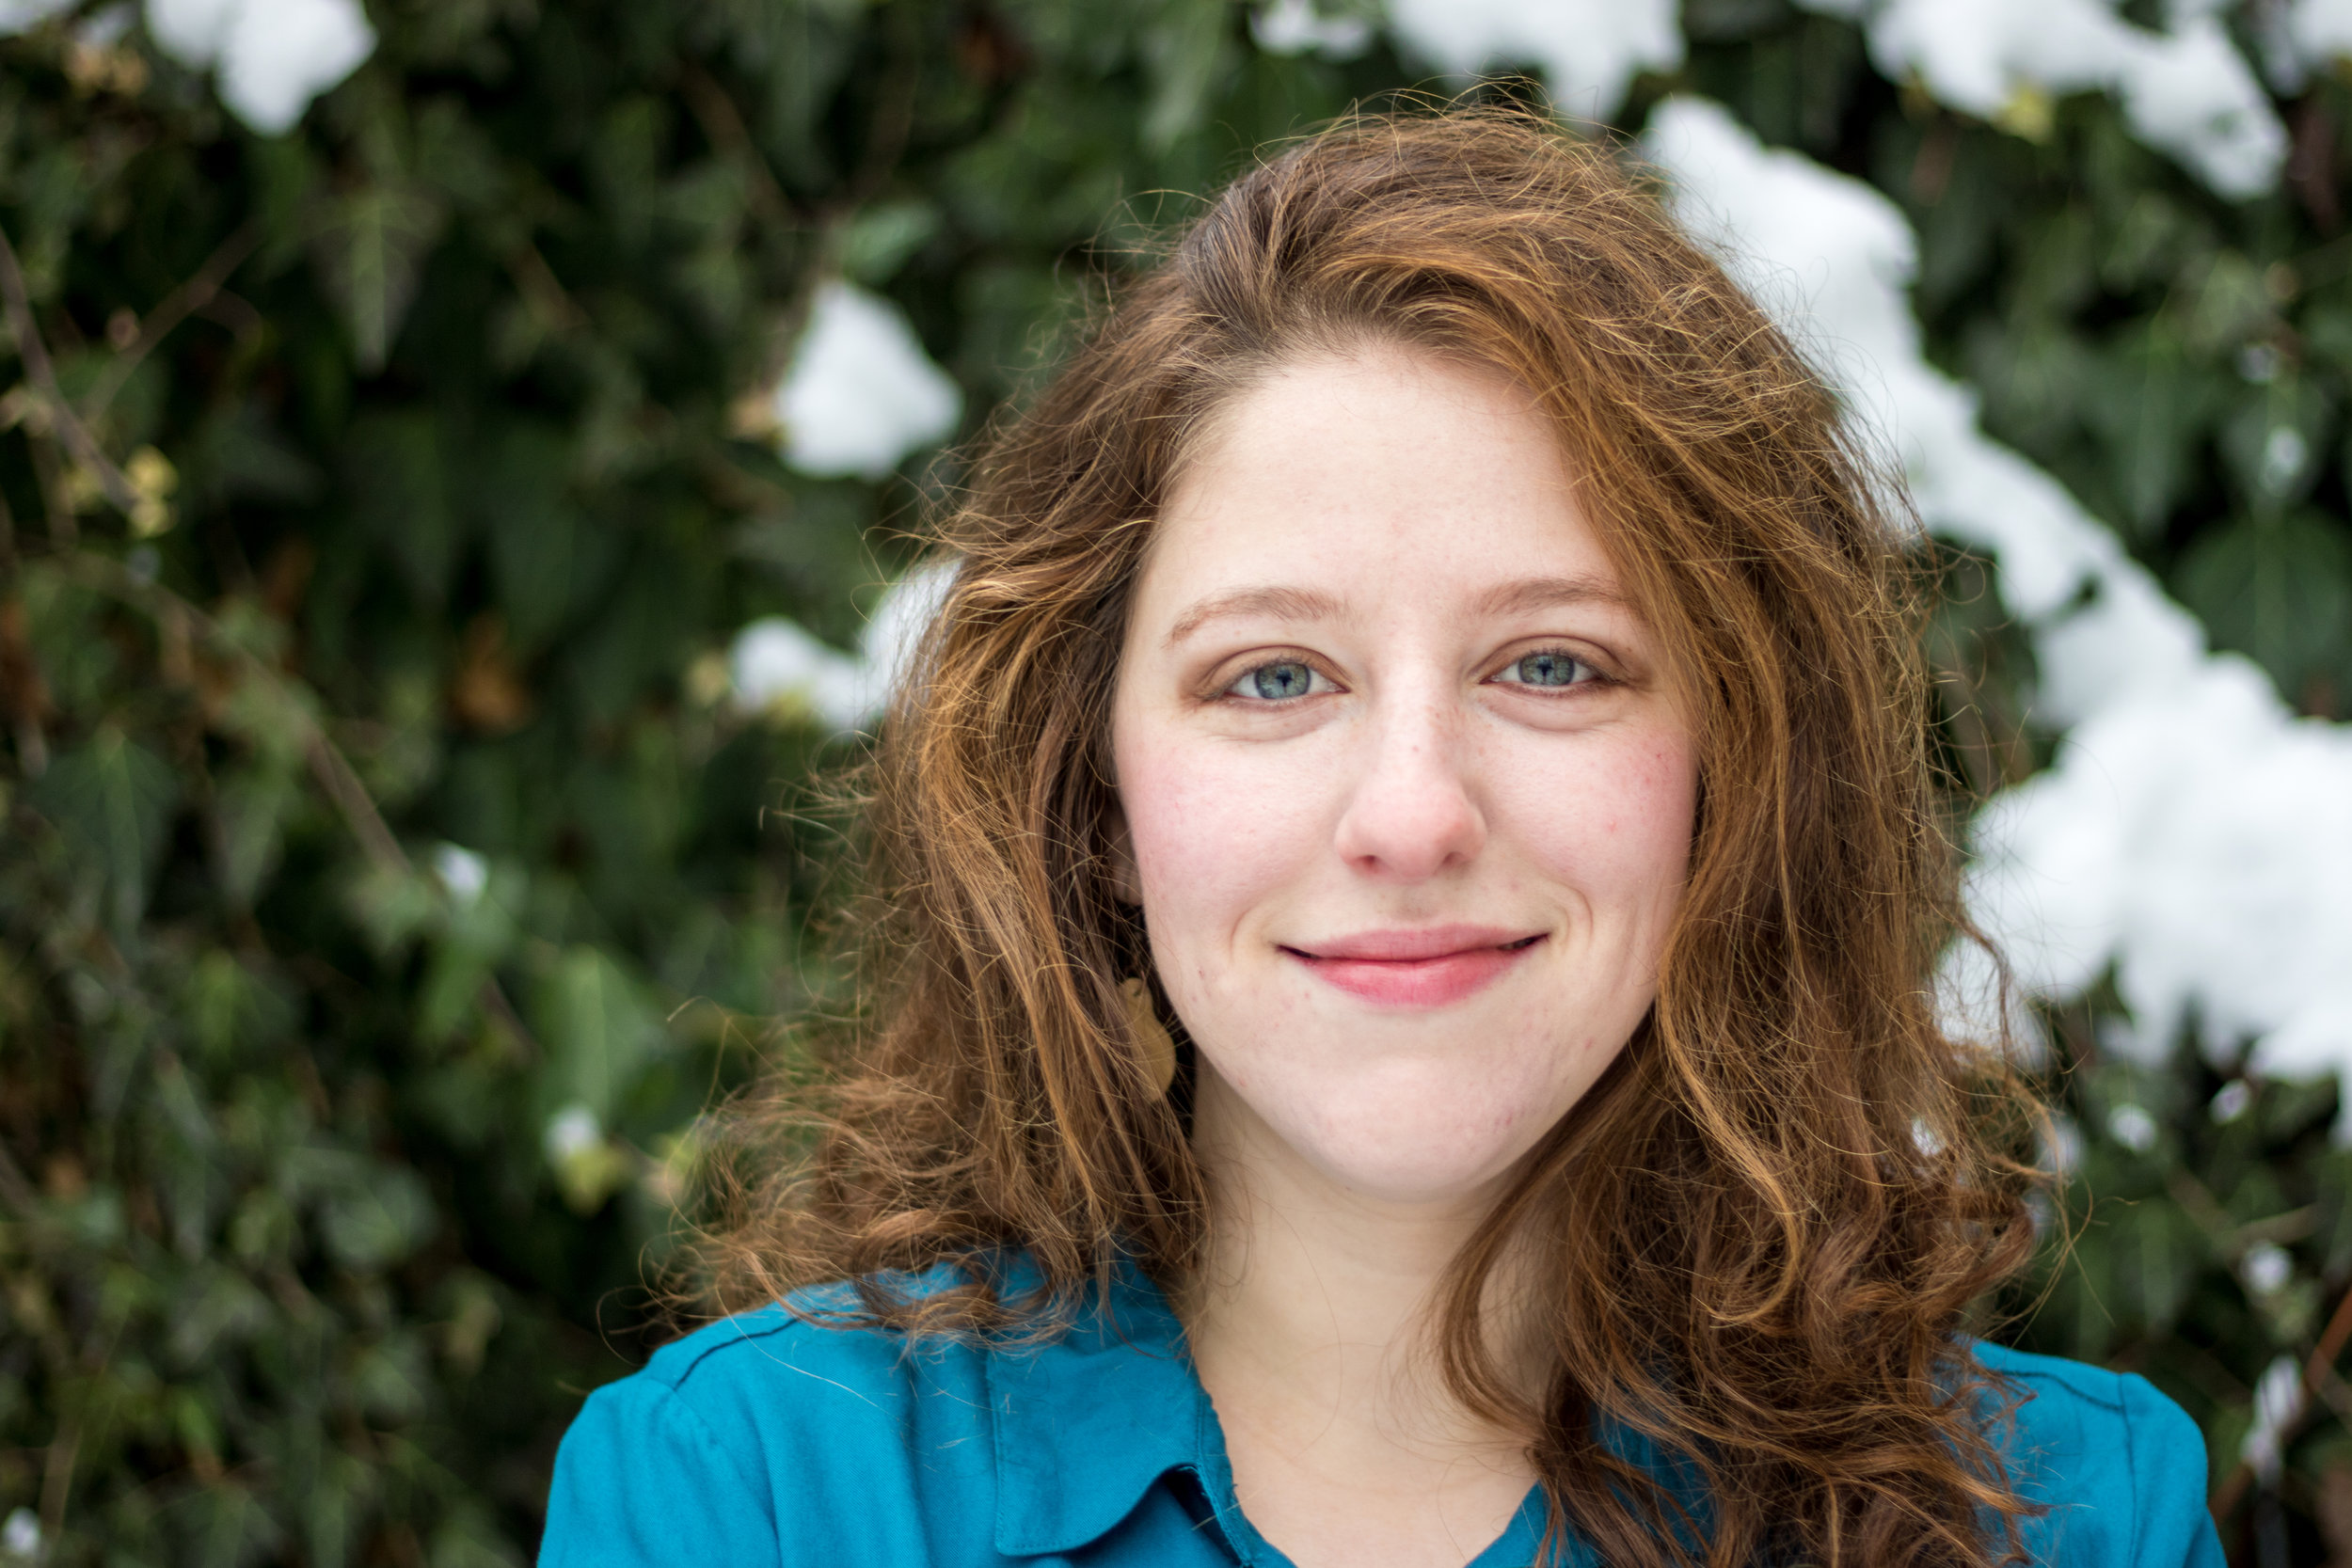 Chloe' Skye - Chloe' Skye is an ESL teacher and avid traveler who moved to Czechia in 2014 on a Fulbright fellowship. She seeks the poetry in linguistic and cultural collisions and explores these themes on her travel blog Chlohemian.Website